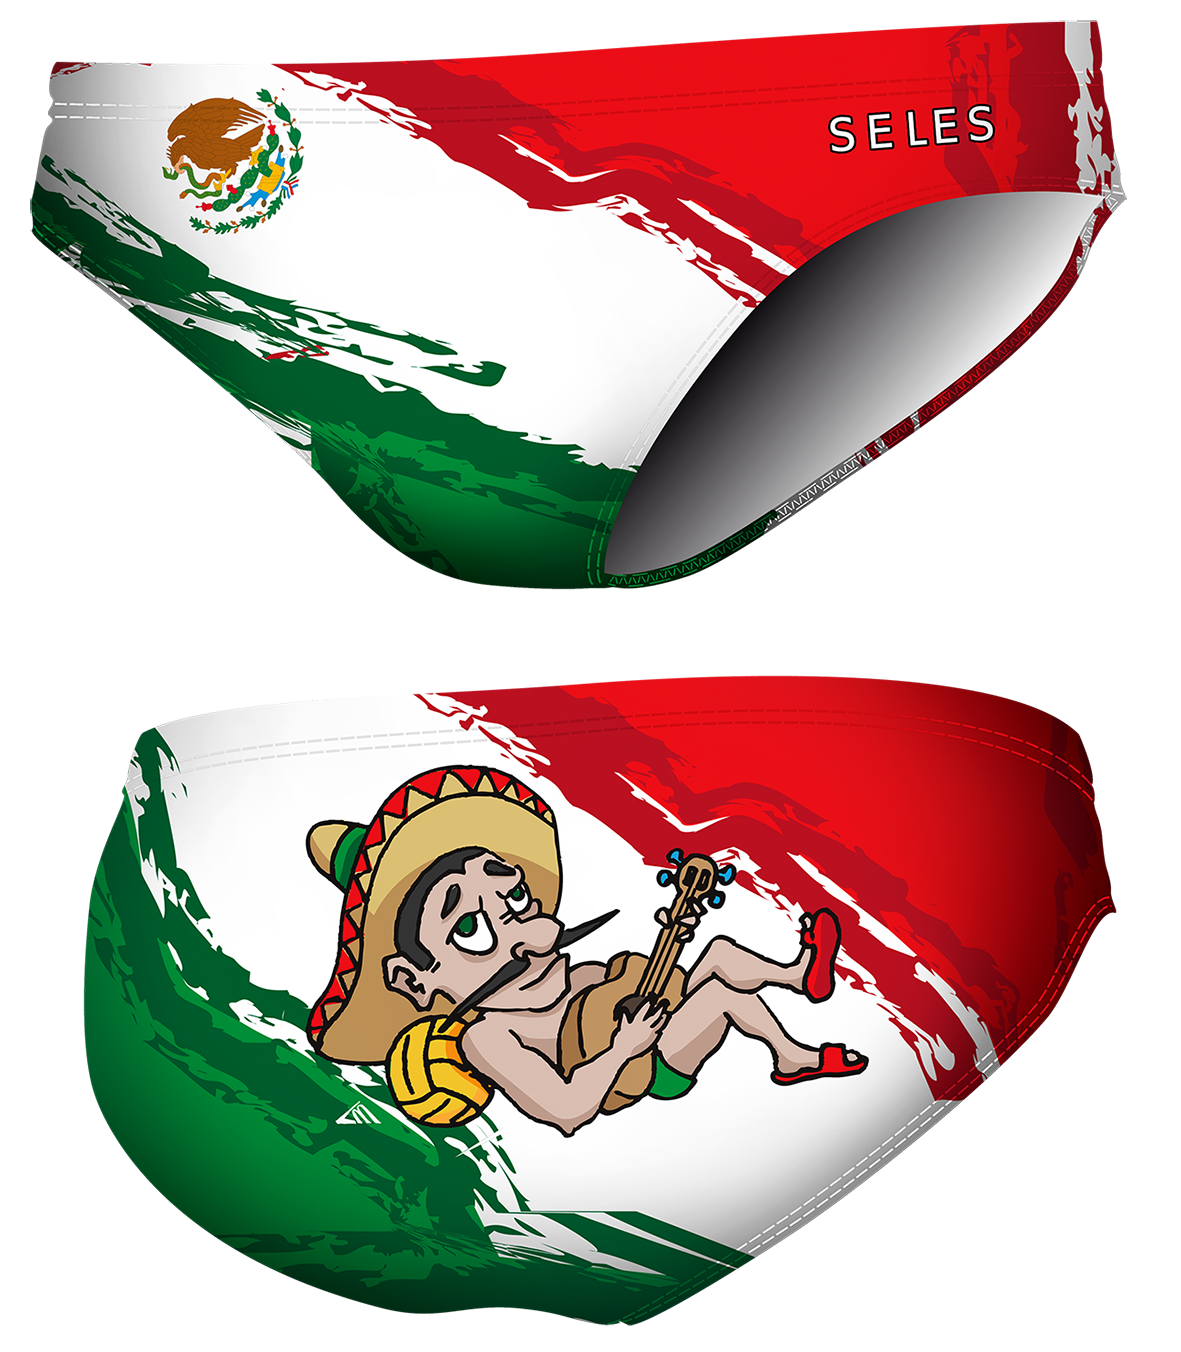 Figurine clipart mexican Selesdesign traditional National Mexican National